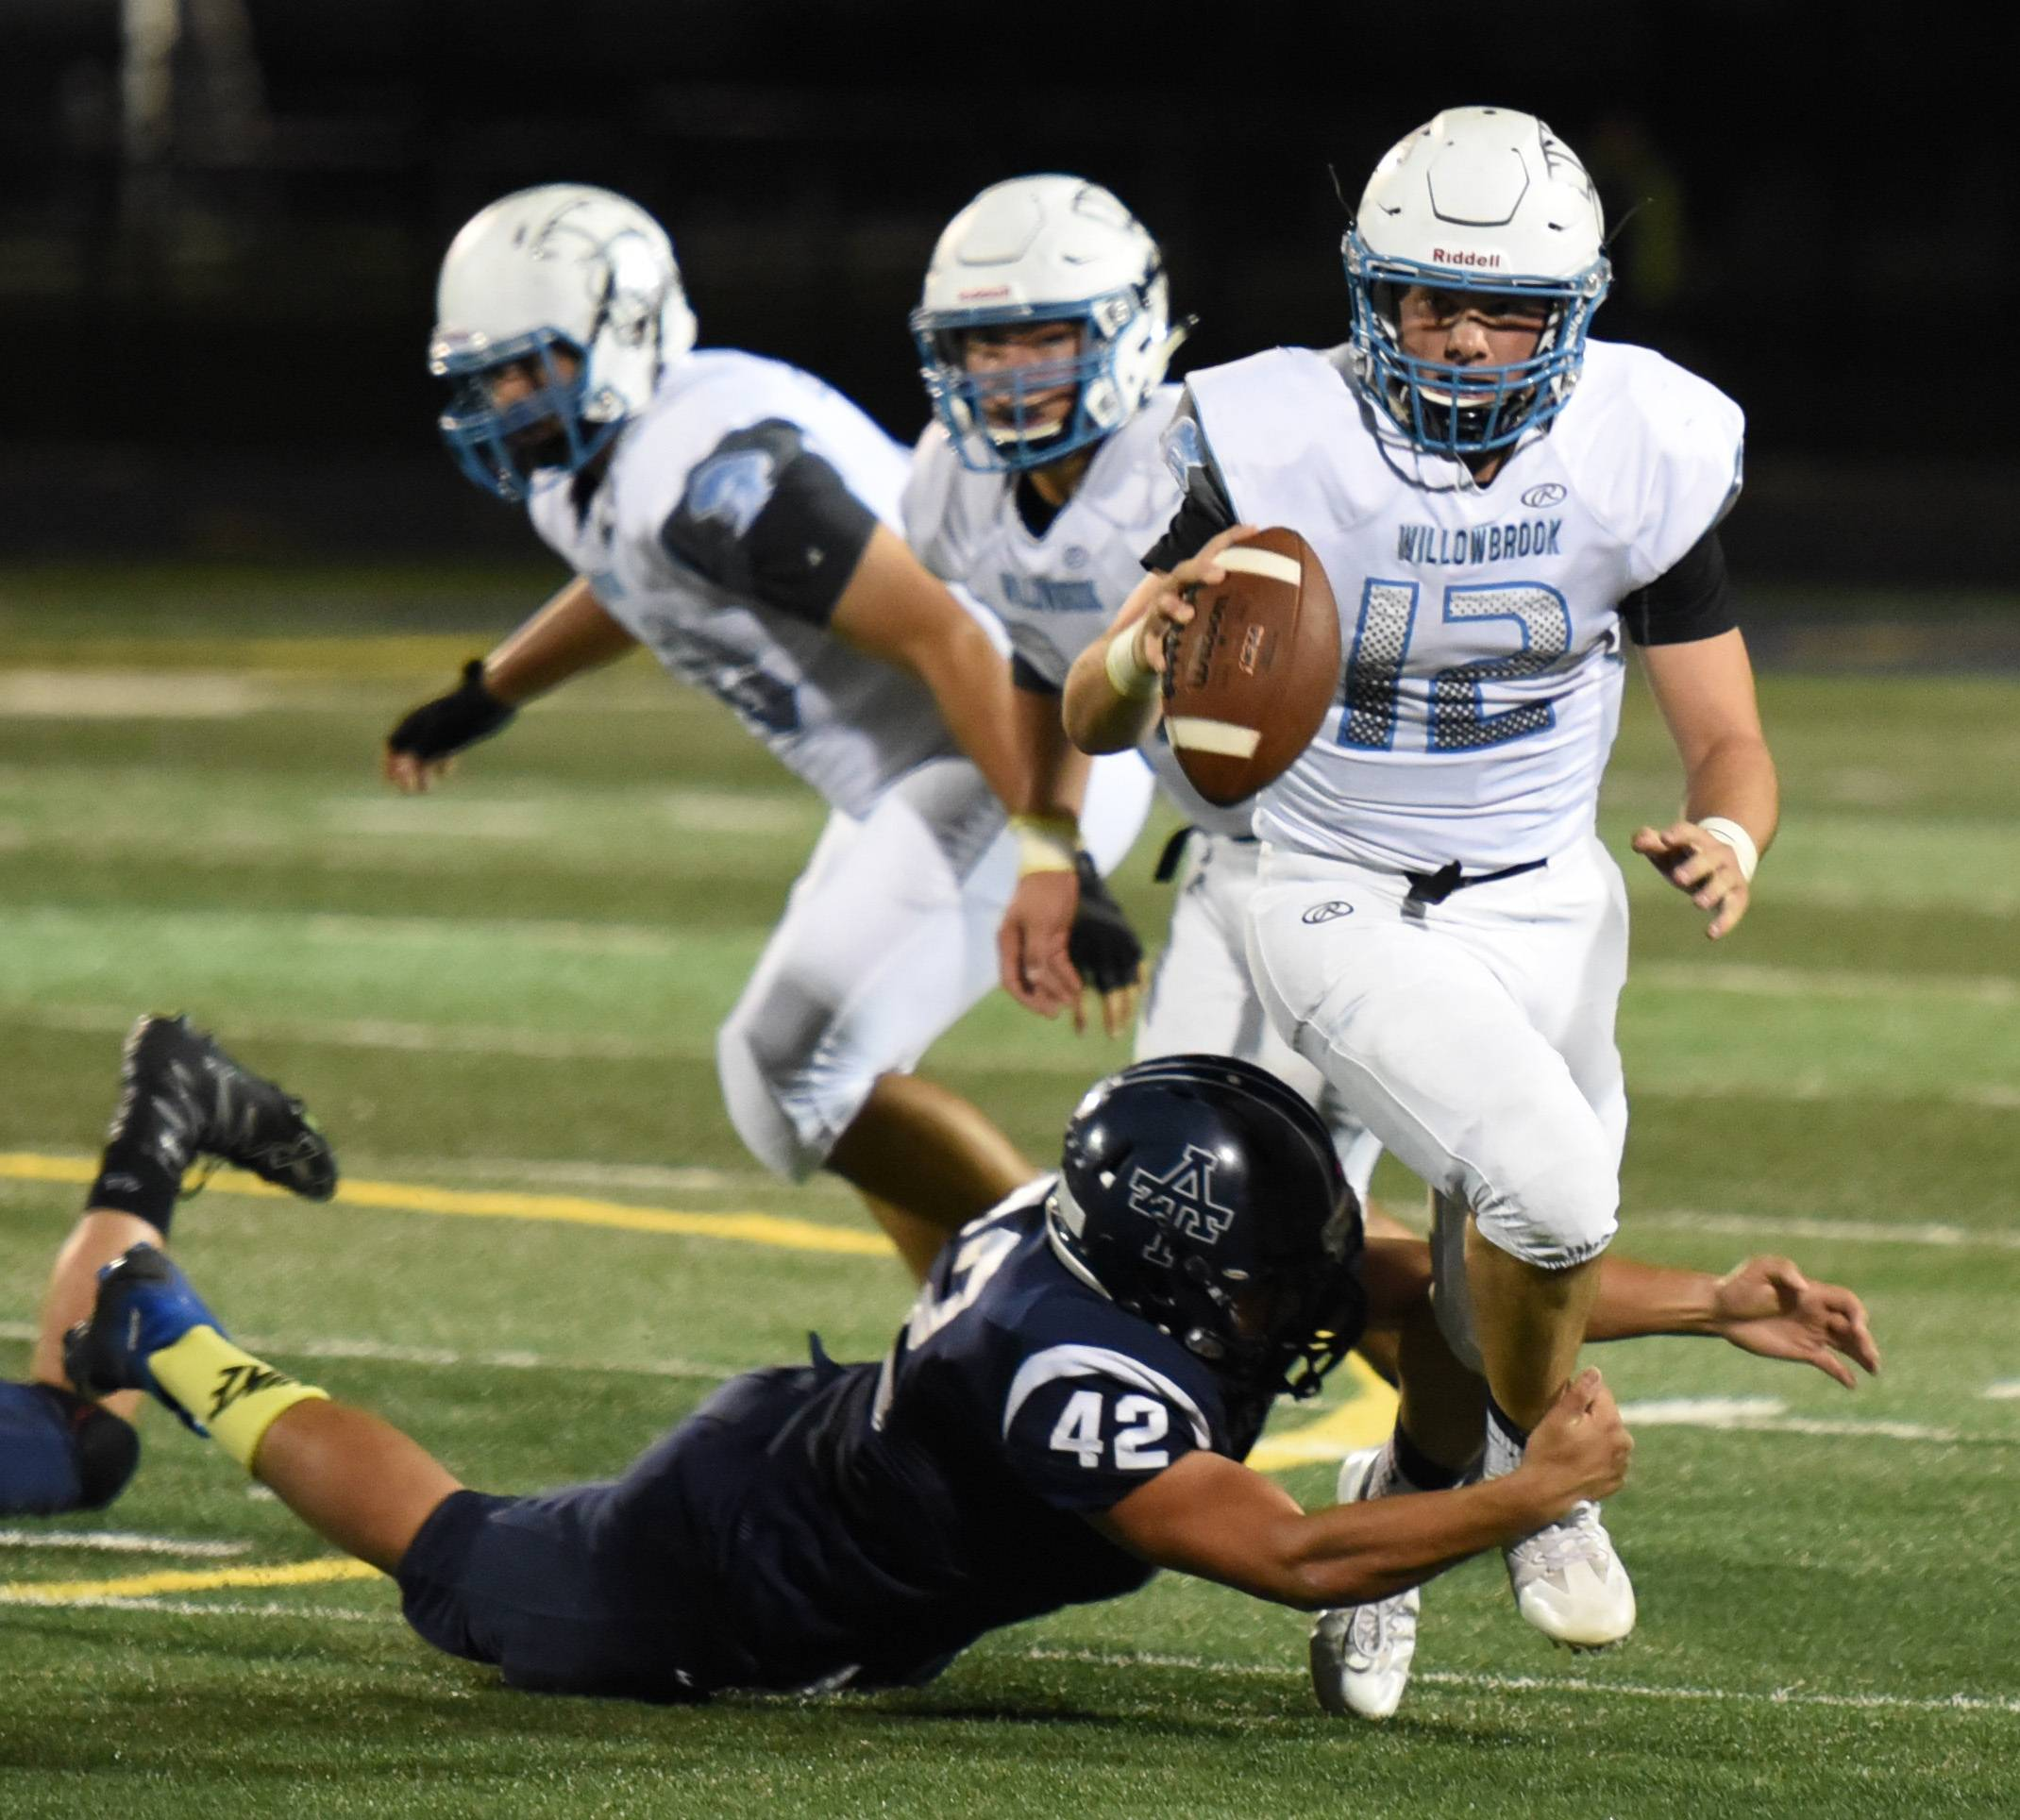 Addison Trail's Juan Bracamontes (42) attempts to bring down Willowbrook's M.J. Ranieri (12) during the Willowbrook at Addison Trail football game Friday.